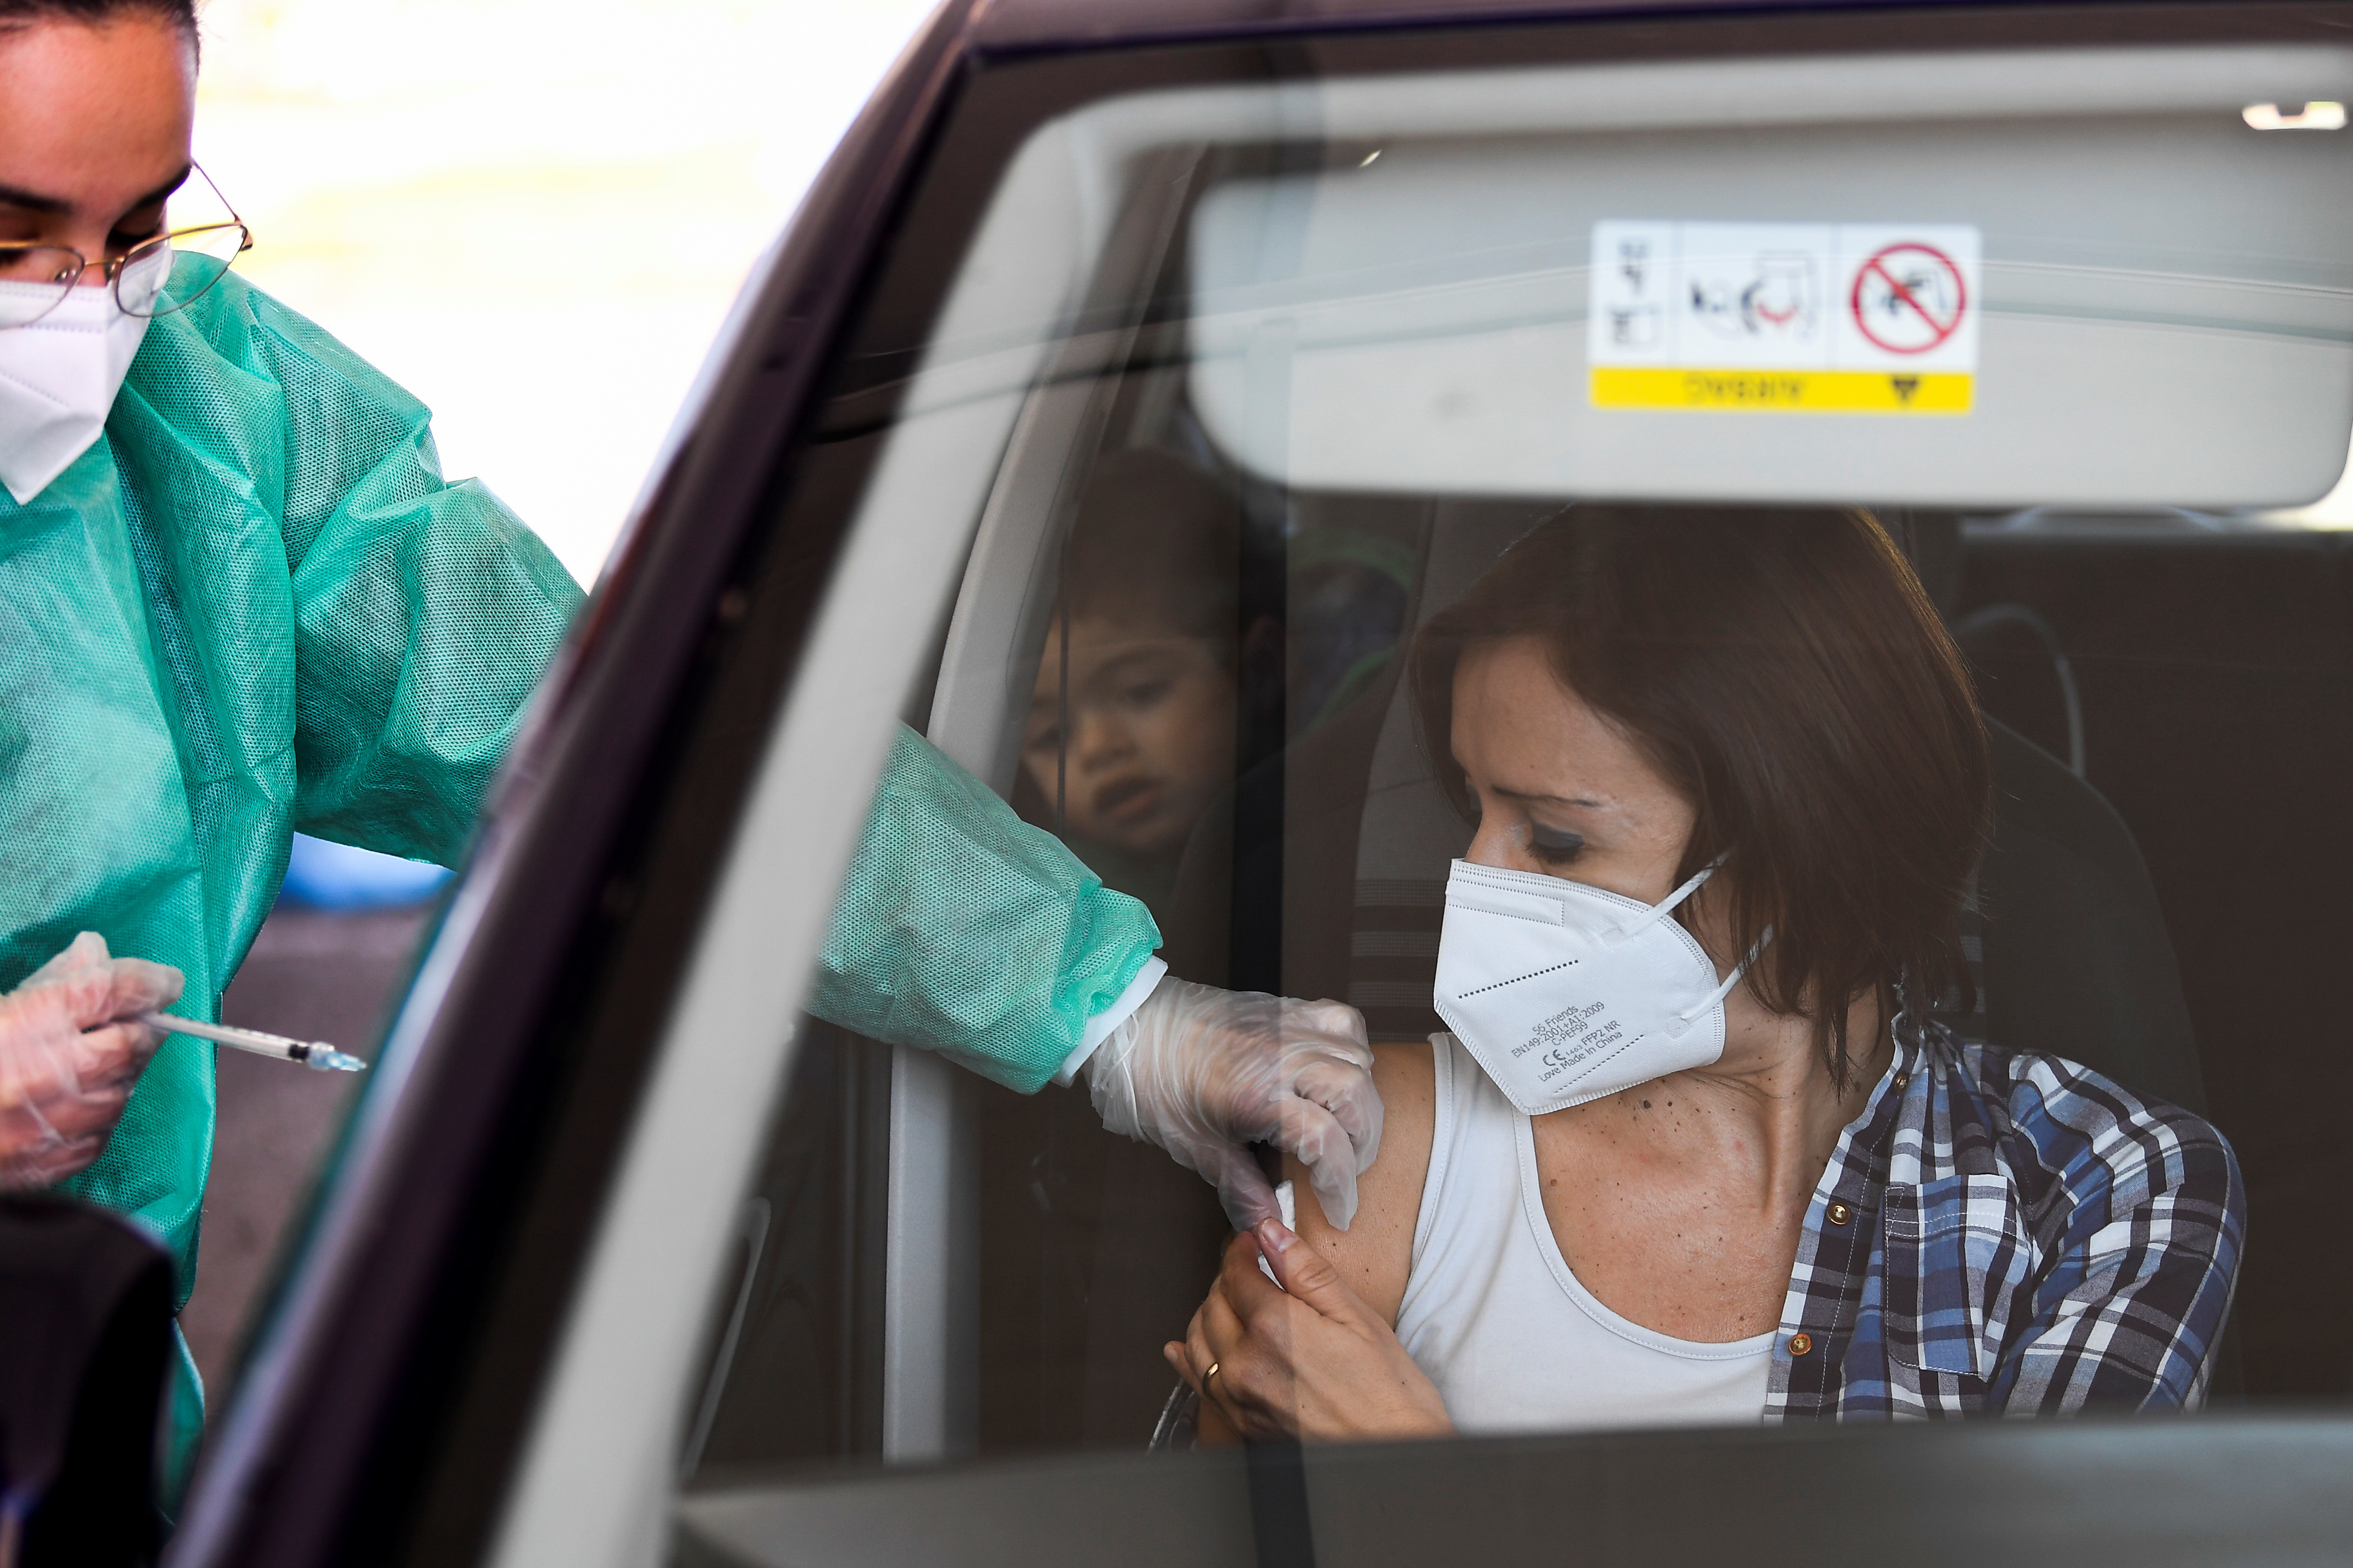 A woman receives the AstraZeneca vaccination against the coronavirus disease (COVID-19) at a drive-through site, in Milan, Italy, March 15, 2021. REUTERS/Flavio Lo Scalzo